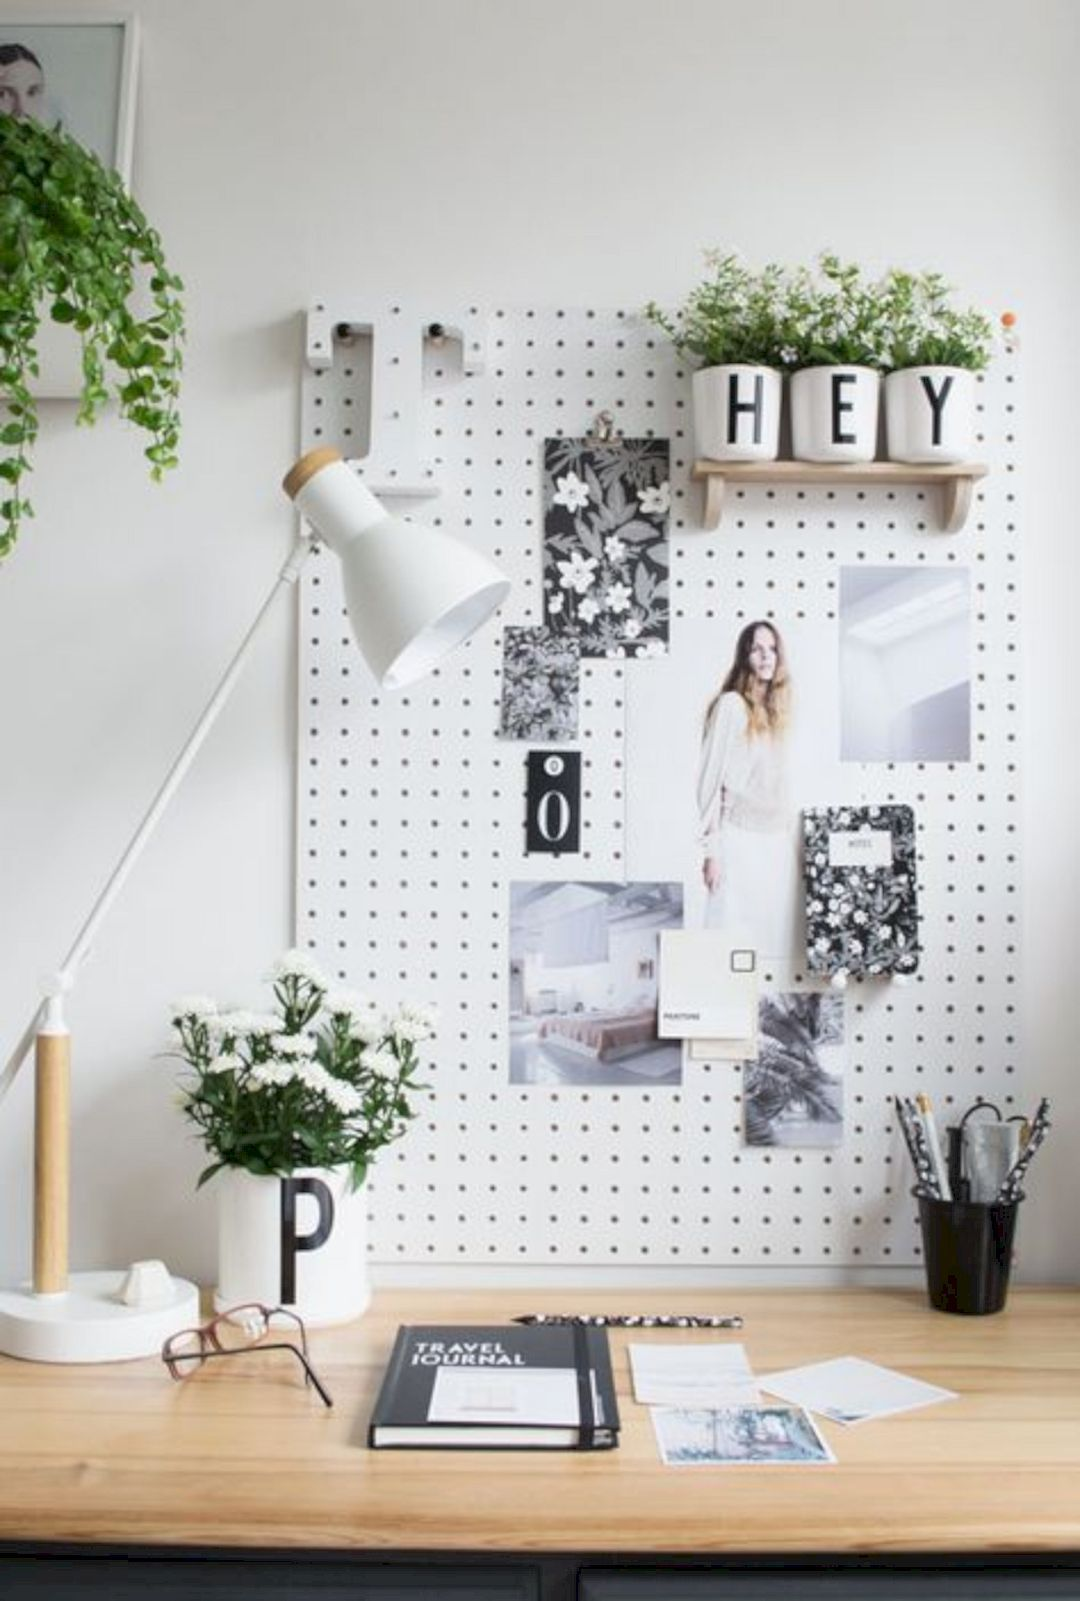 Impressive Office Wall Office Wall Decoration Office Wall Office Wall Decor Decorations E Office Wall Decoration Items Office Wall Decoration Design decor Office Wall Decor